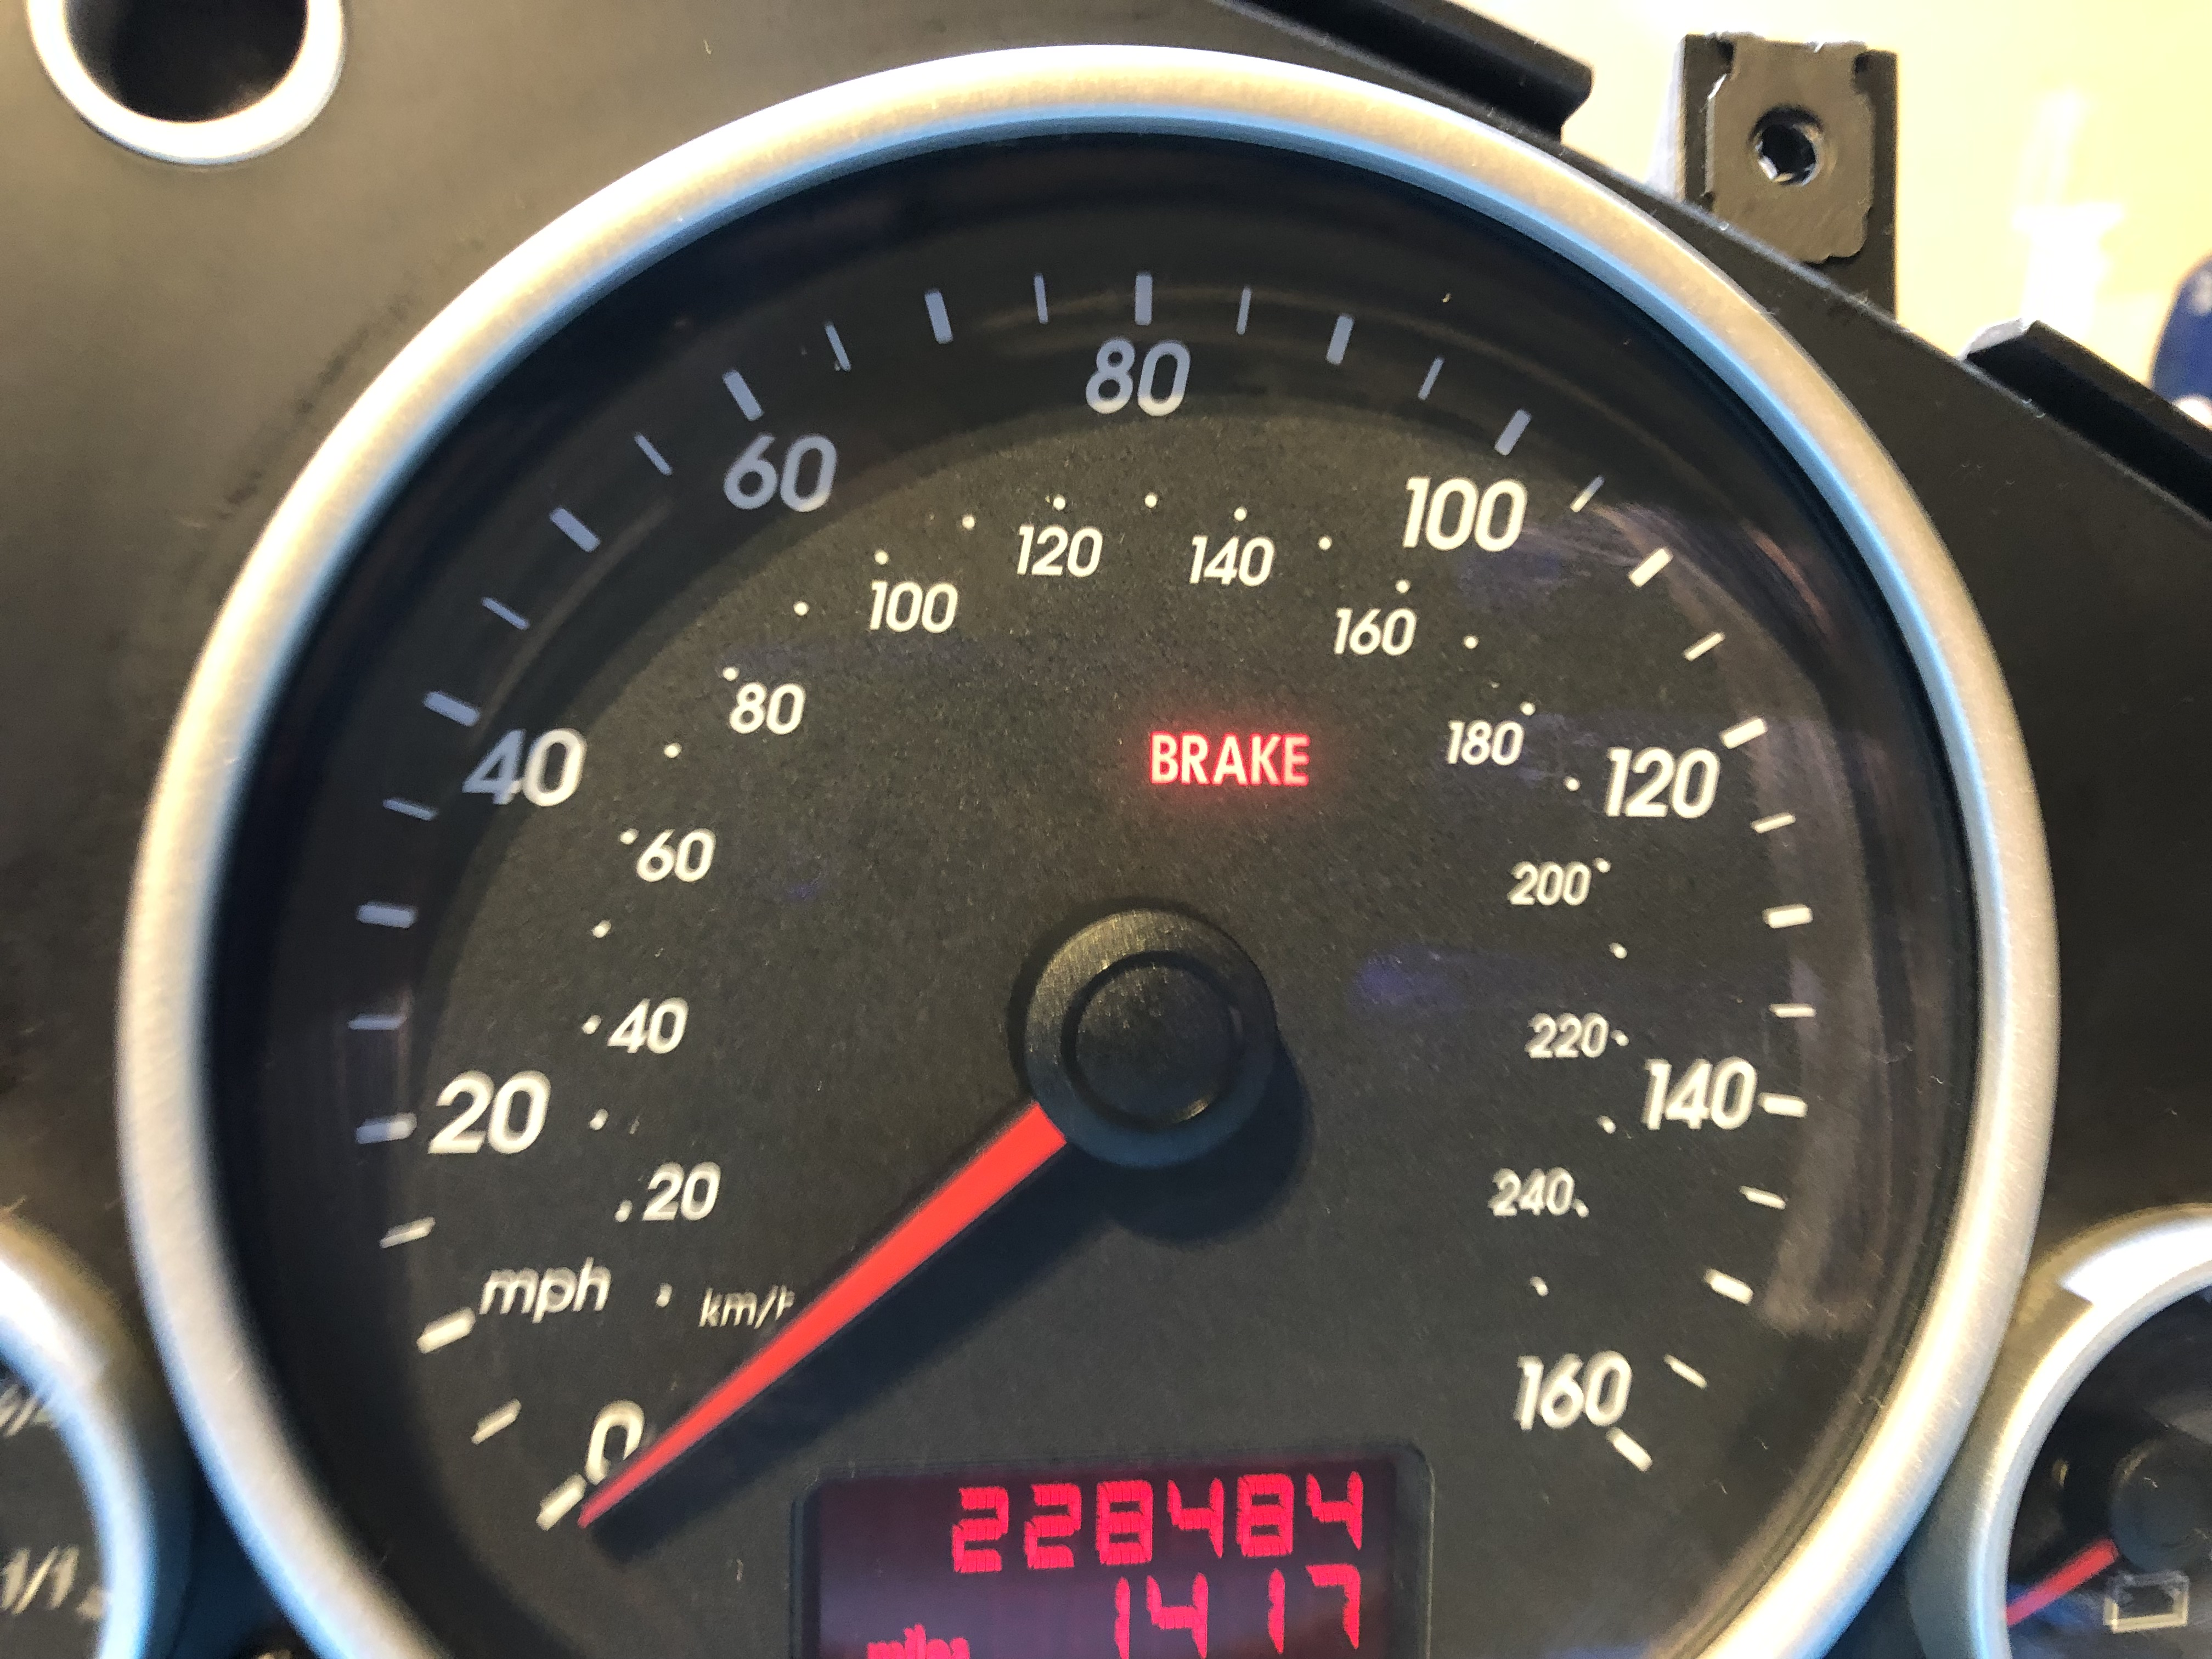 2004 VOLKSWAGEN TOUAREG USED DASHBOARD INSTRUMENT CLUSTER FOR SALE (MPH)